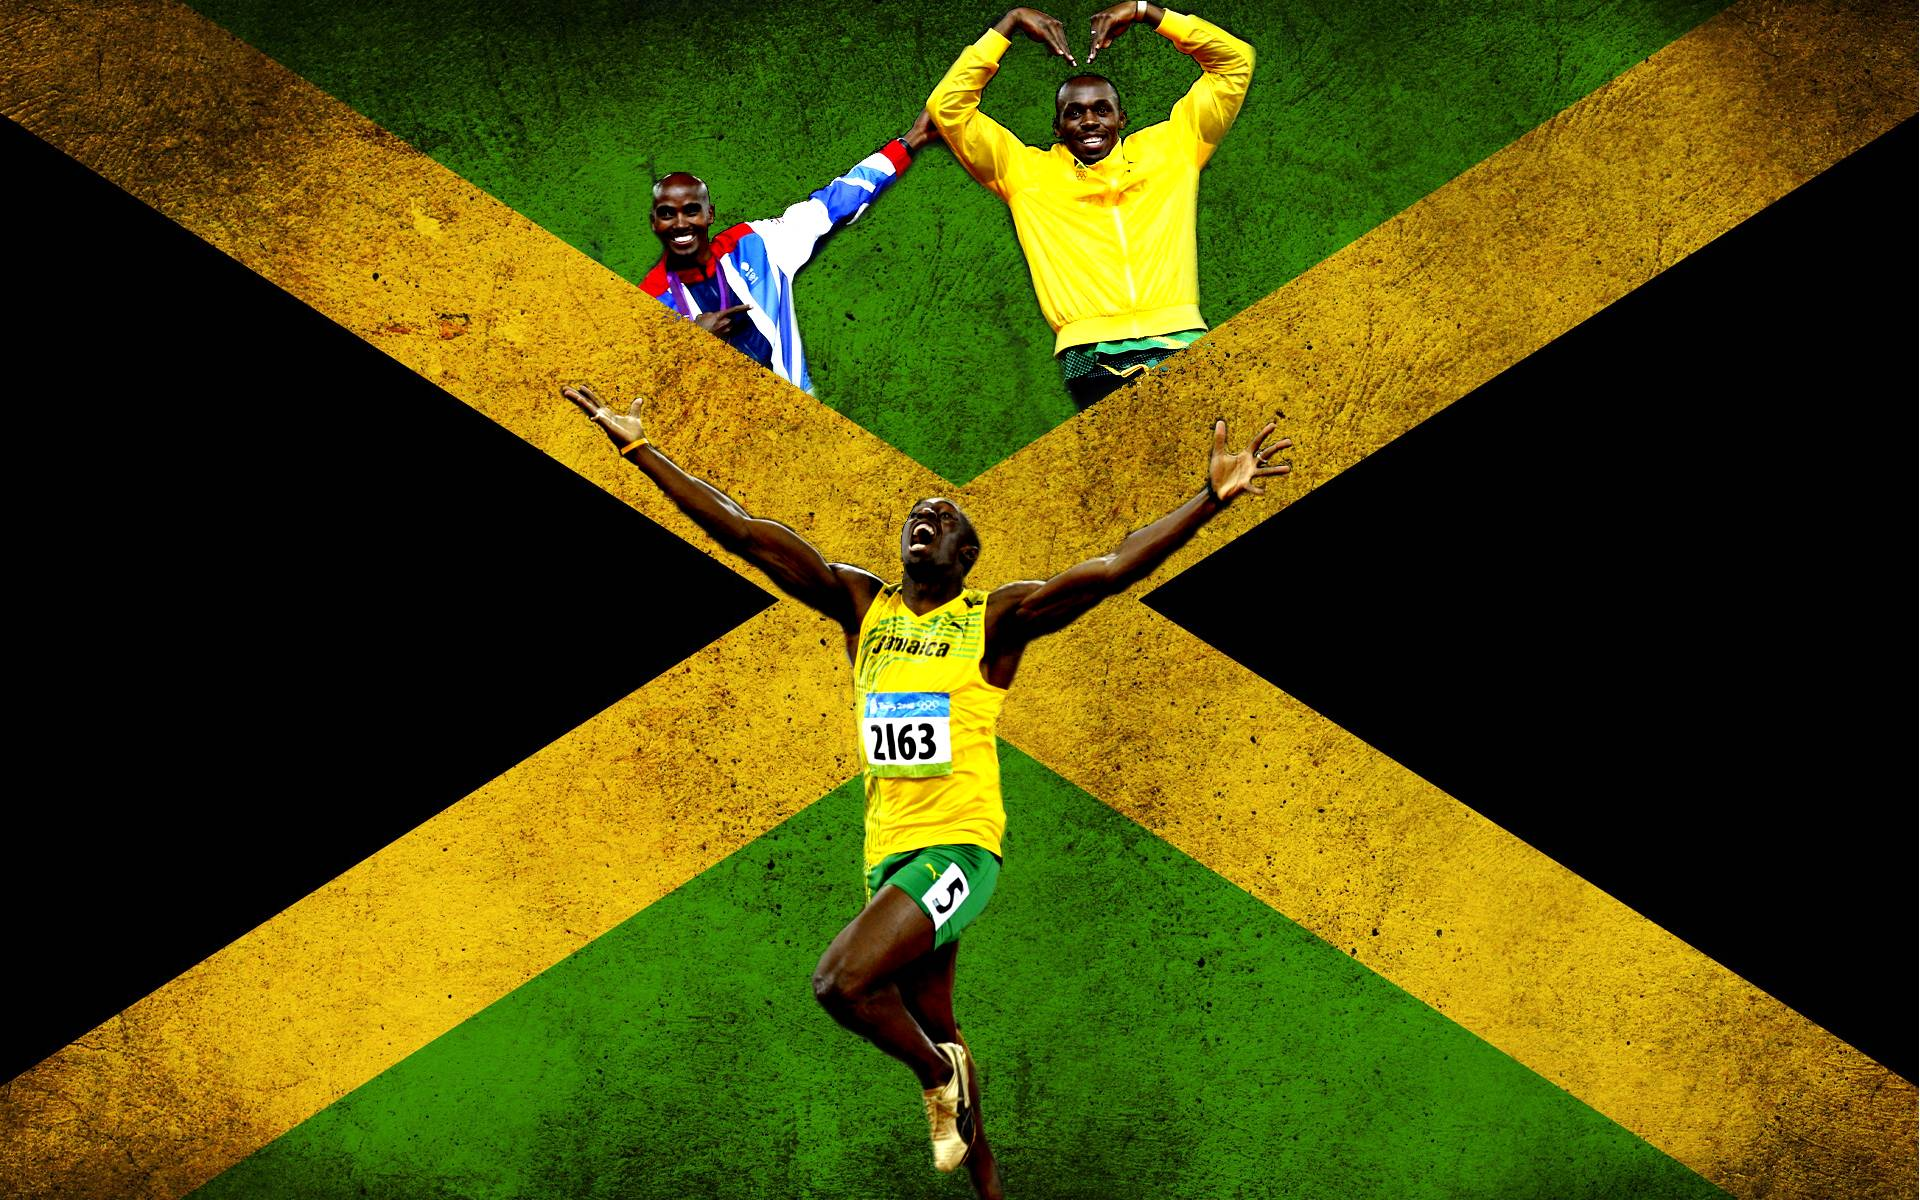 Wallpaper Mobil Sport Hd Usain Bolt Full Hd Fondo De Pantalla And Fondo De